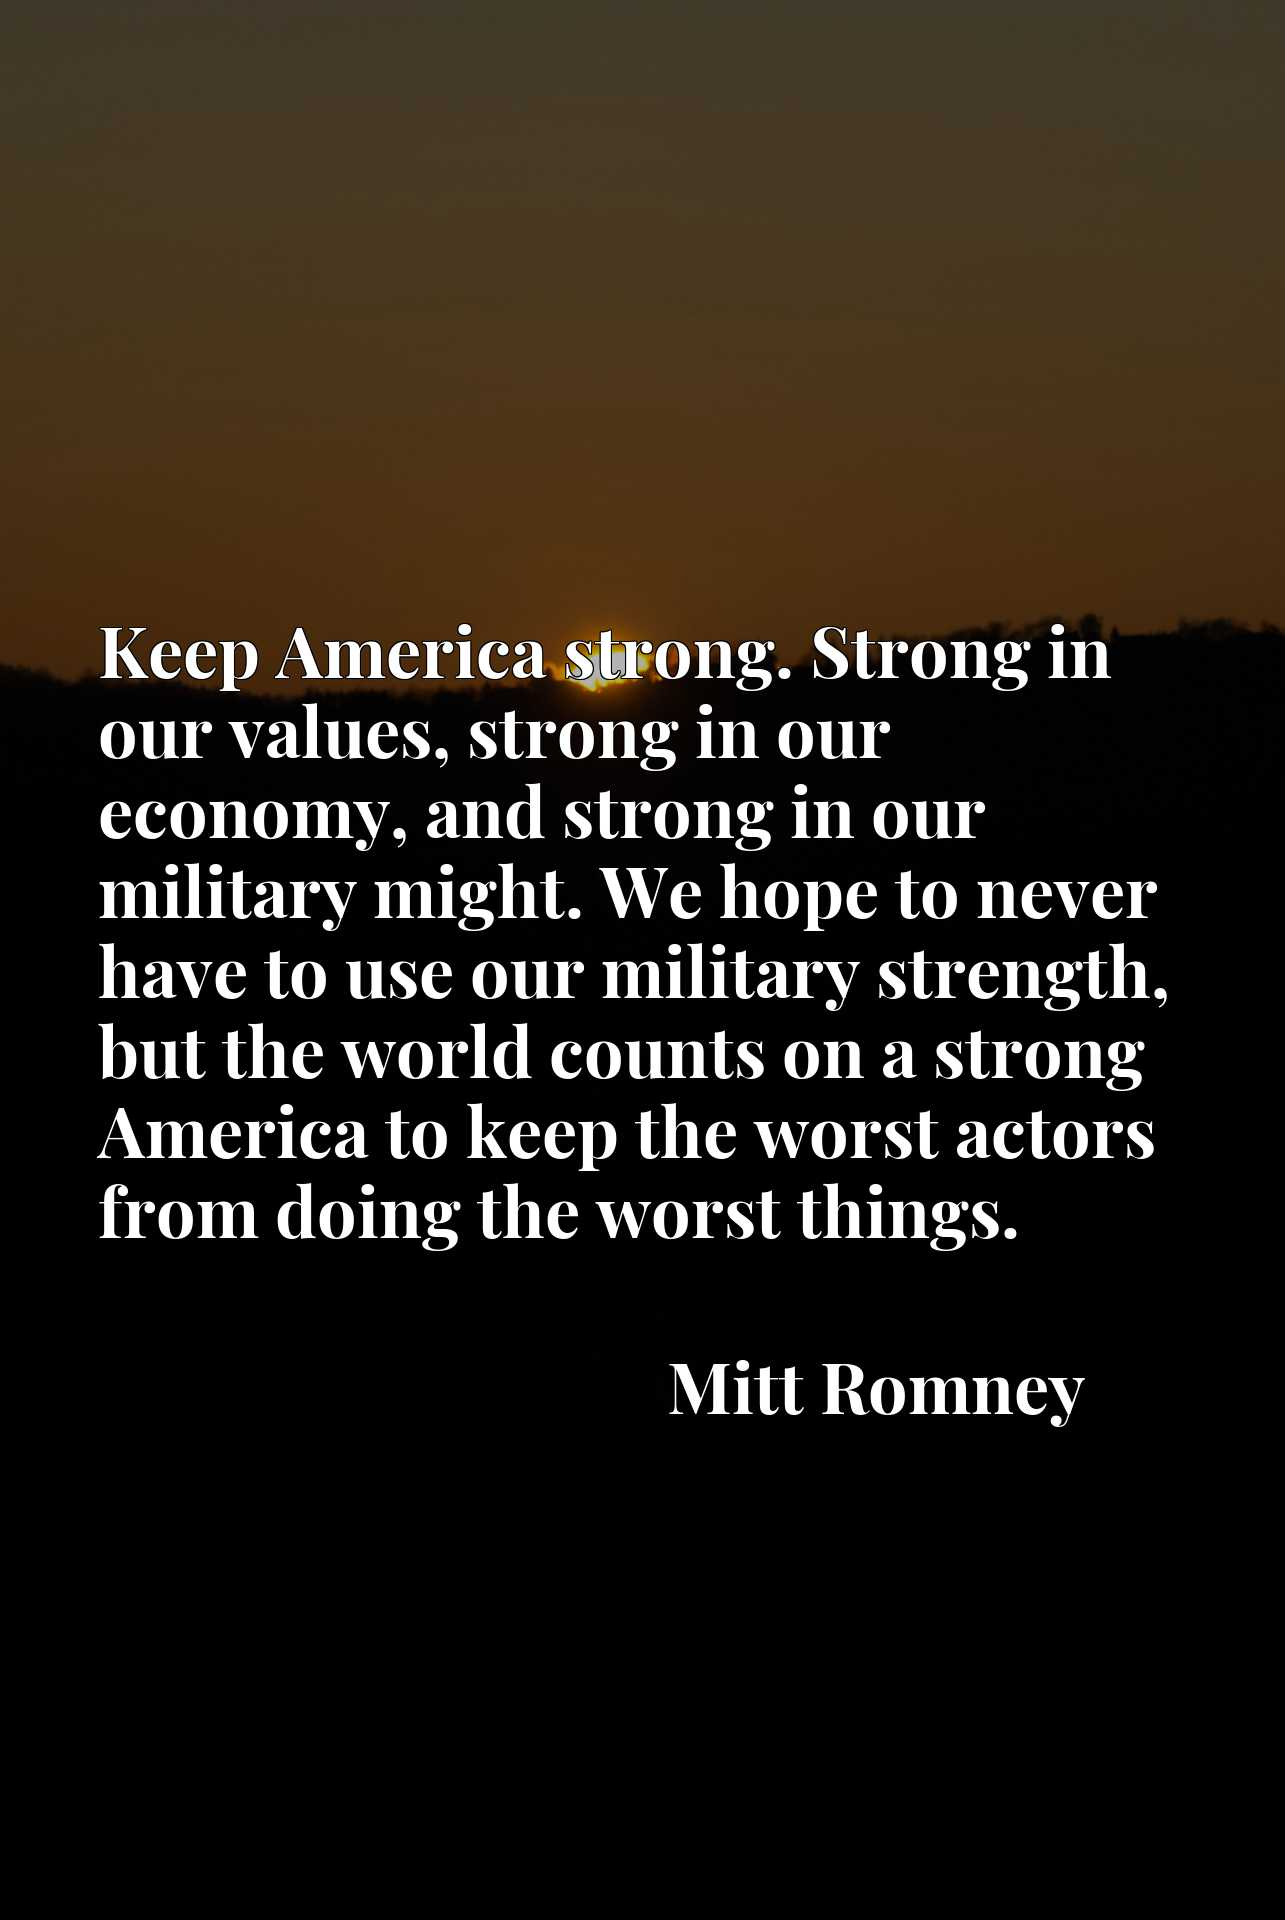 Keep America strong. Strong in our values, strong in our economy, and strong in our military might. We hope to never have to use our military strength, but the world counts on a strong America to keep the worst actors from doing the worst things.